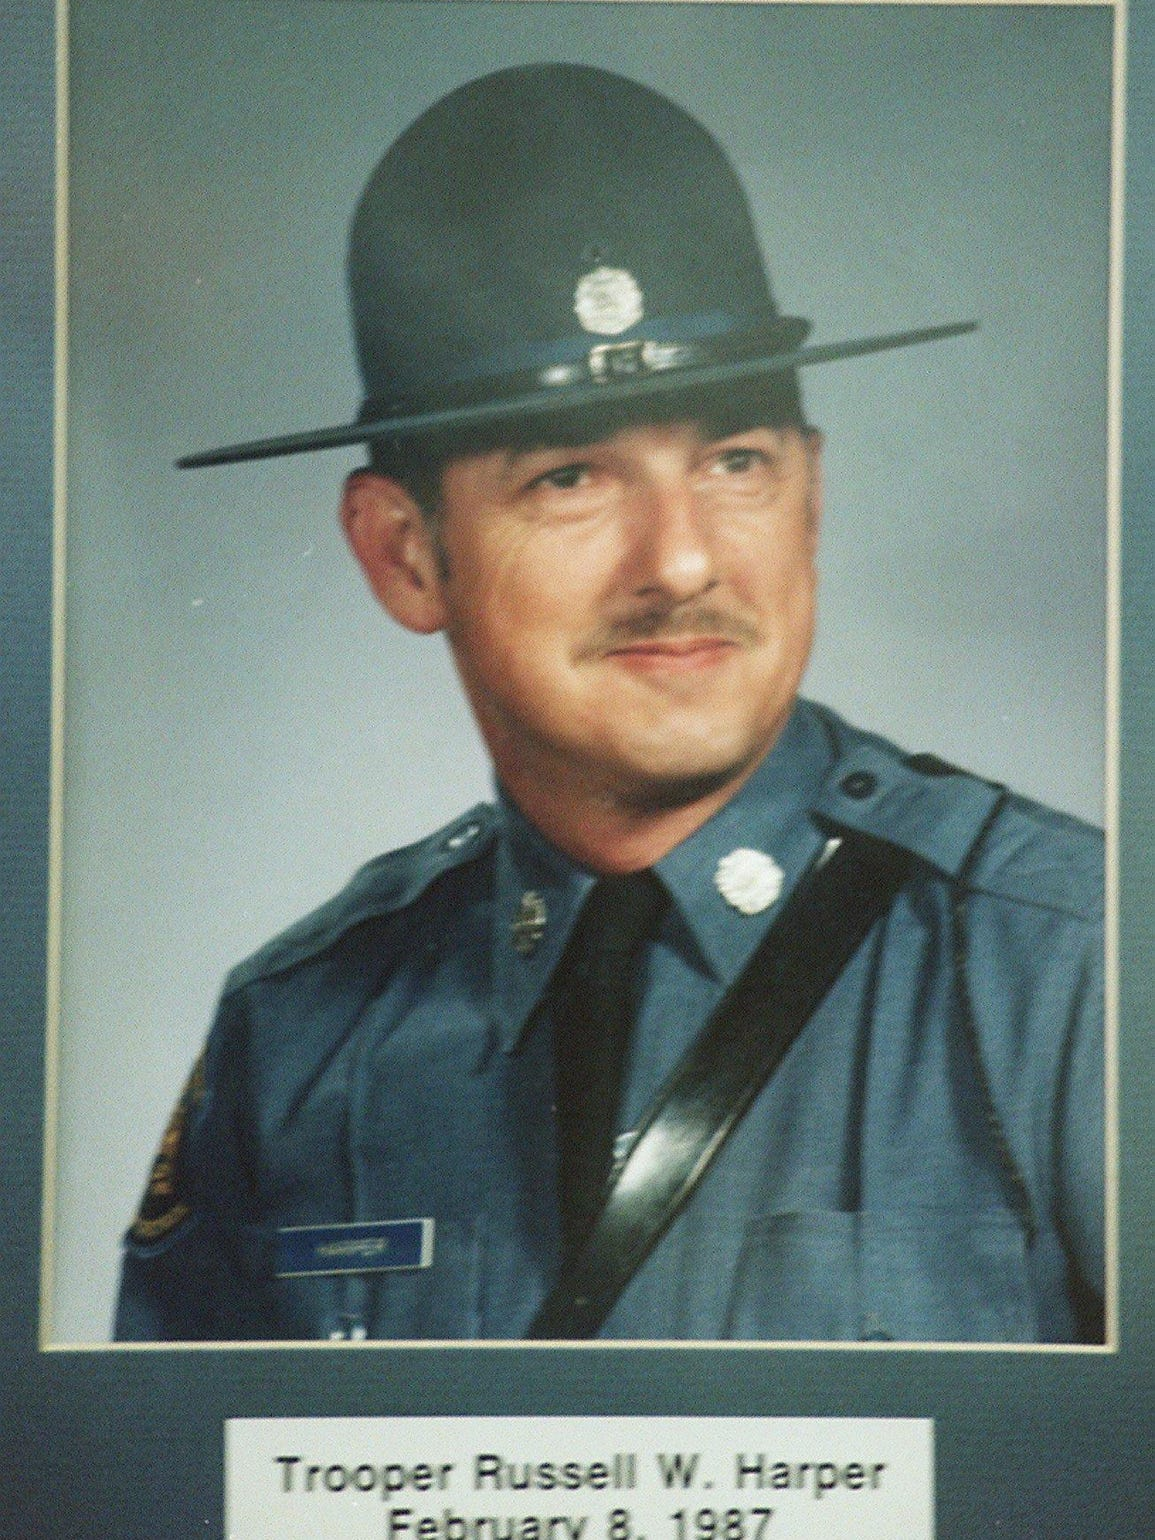 Missouri State Highway Patrol trooper Russell Harper